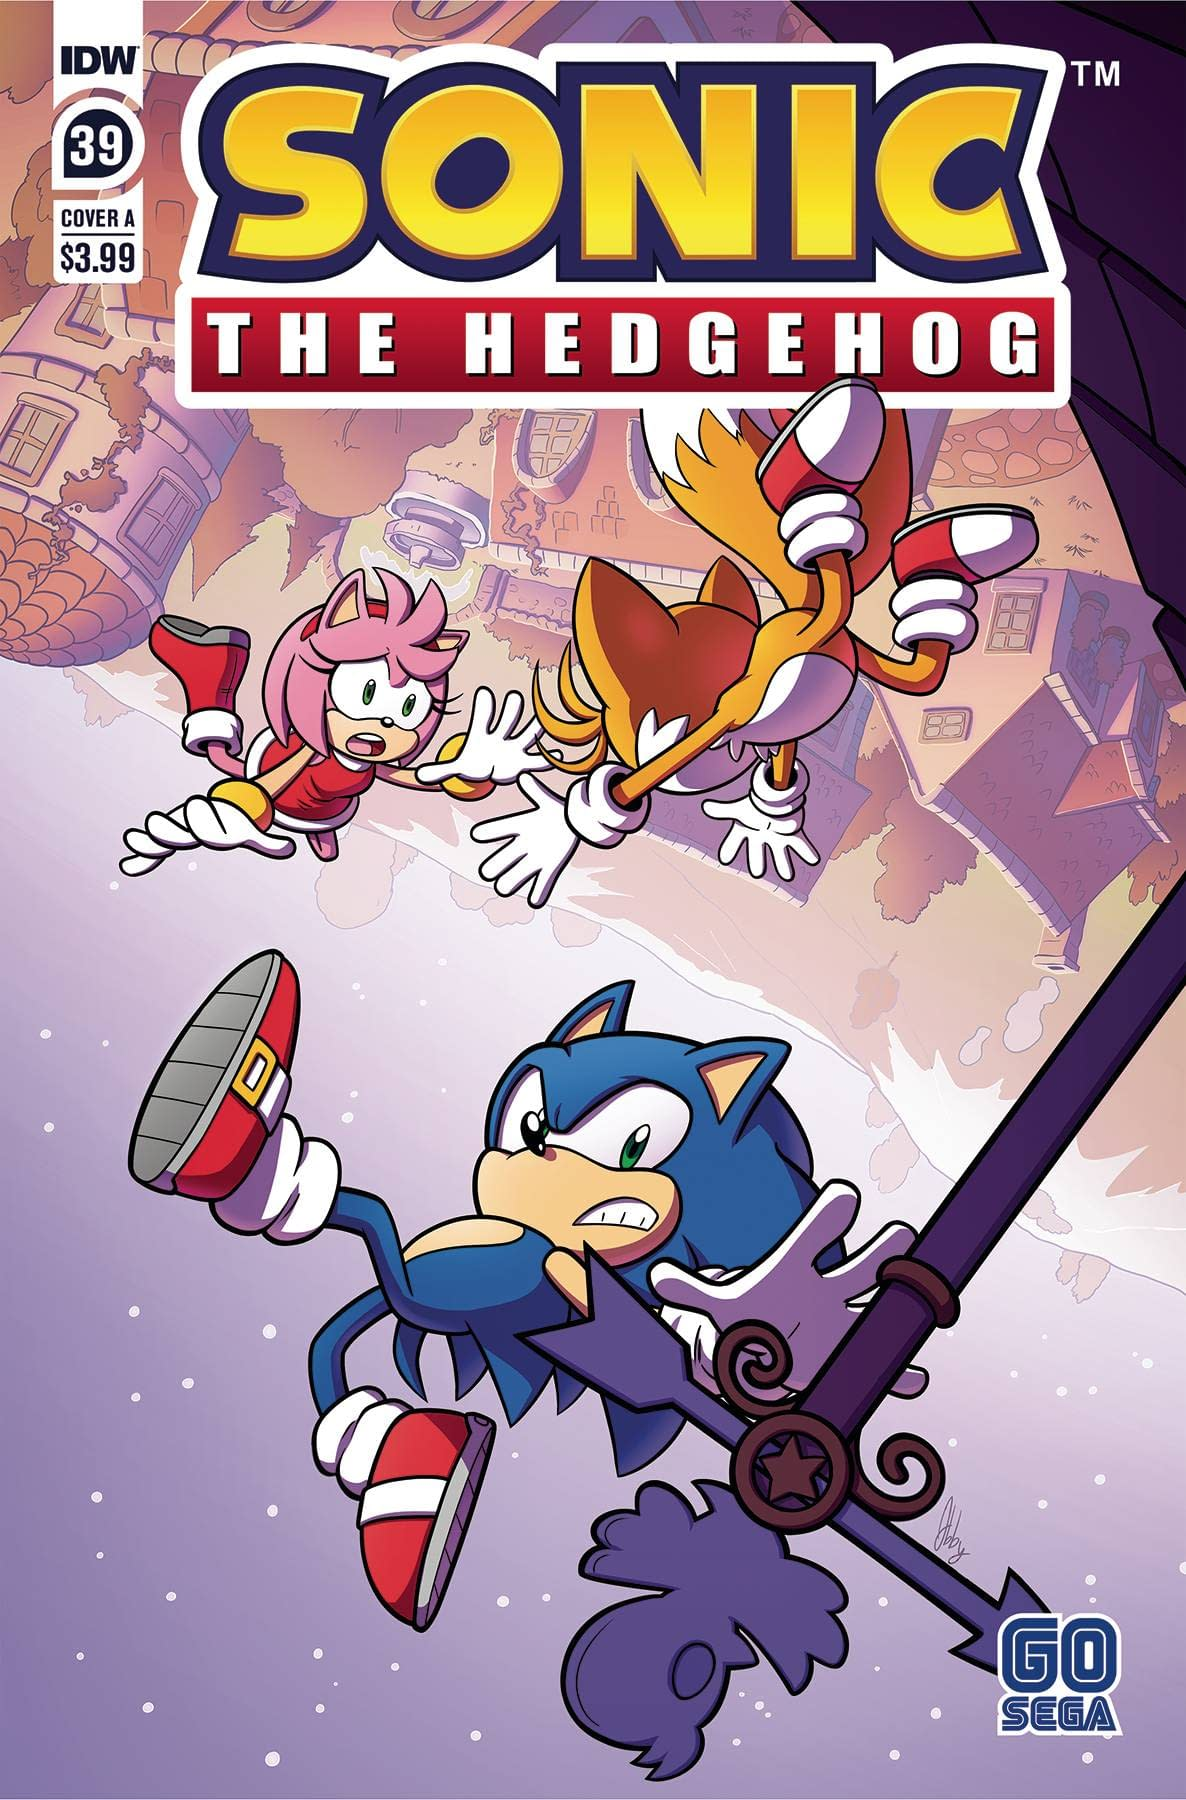 SONIC THE HEDGEHOG #39 CVR A ABBY BULMER